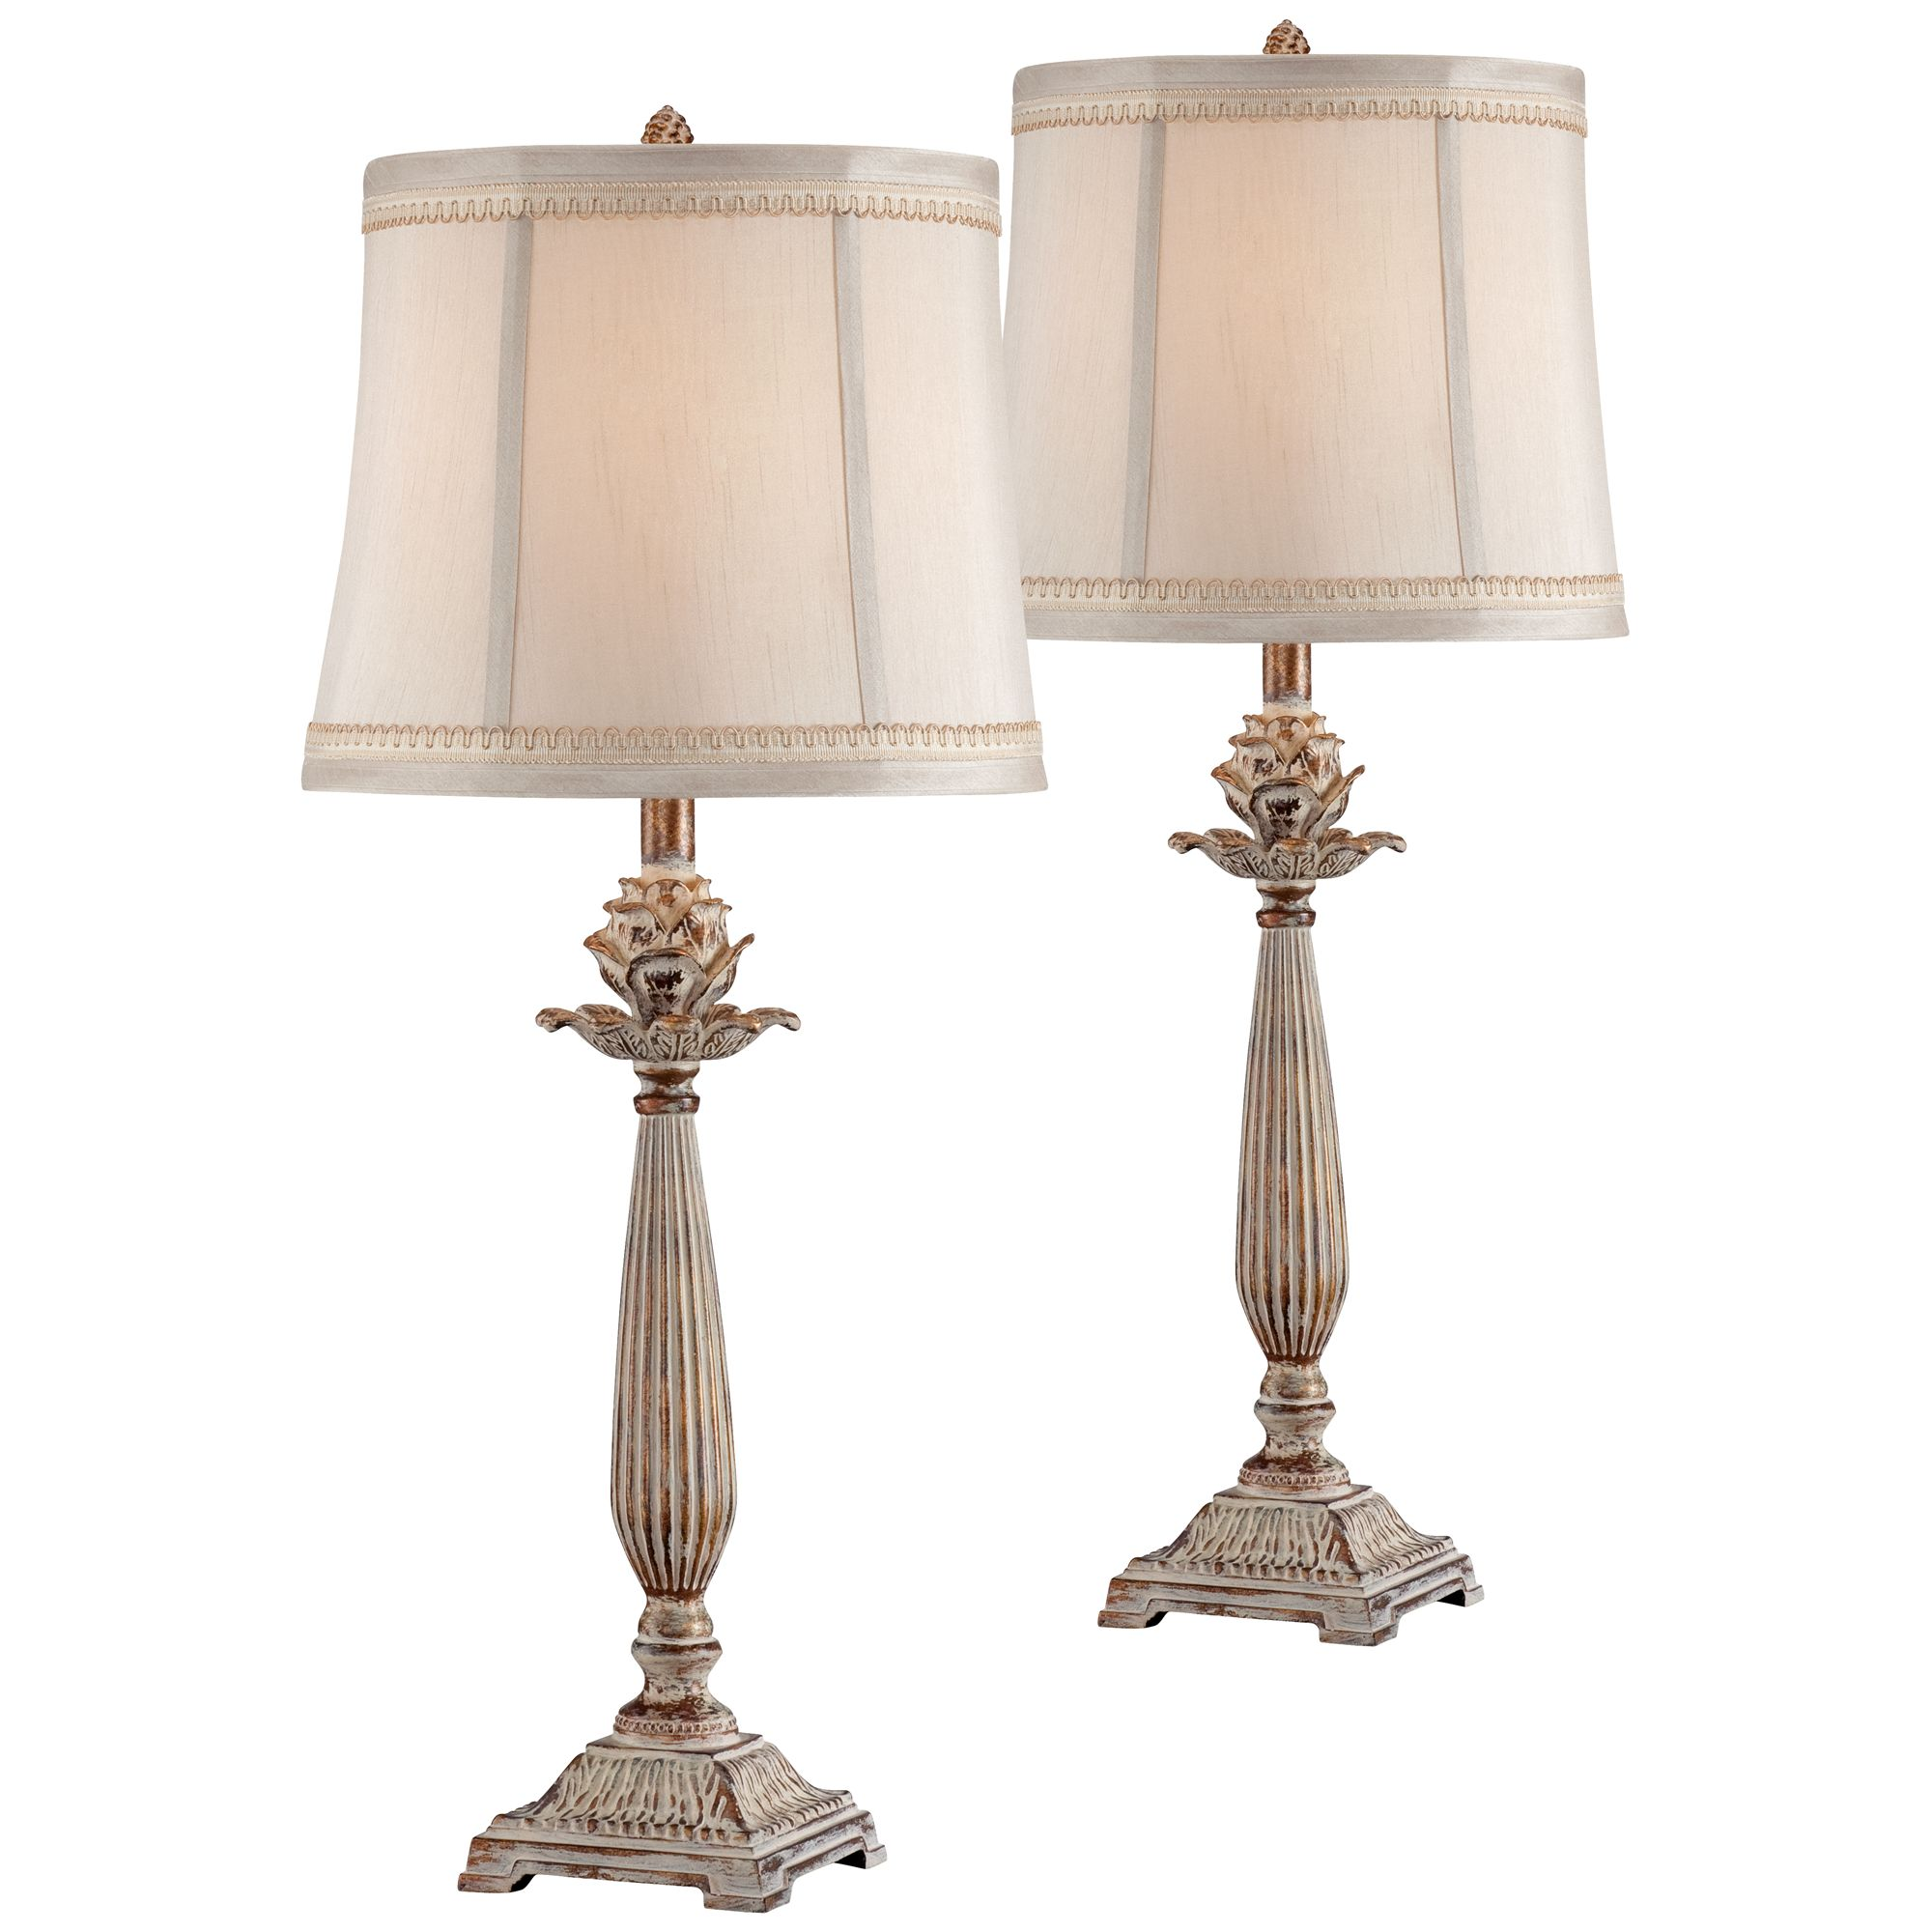 Regency Hill Chic Table Lamps Set of 2 Antique White Washed Petite Artichoke Font Beige Fabric Bell Shade for Living Room Family